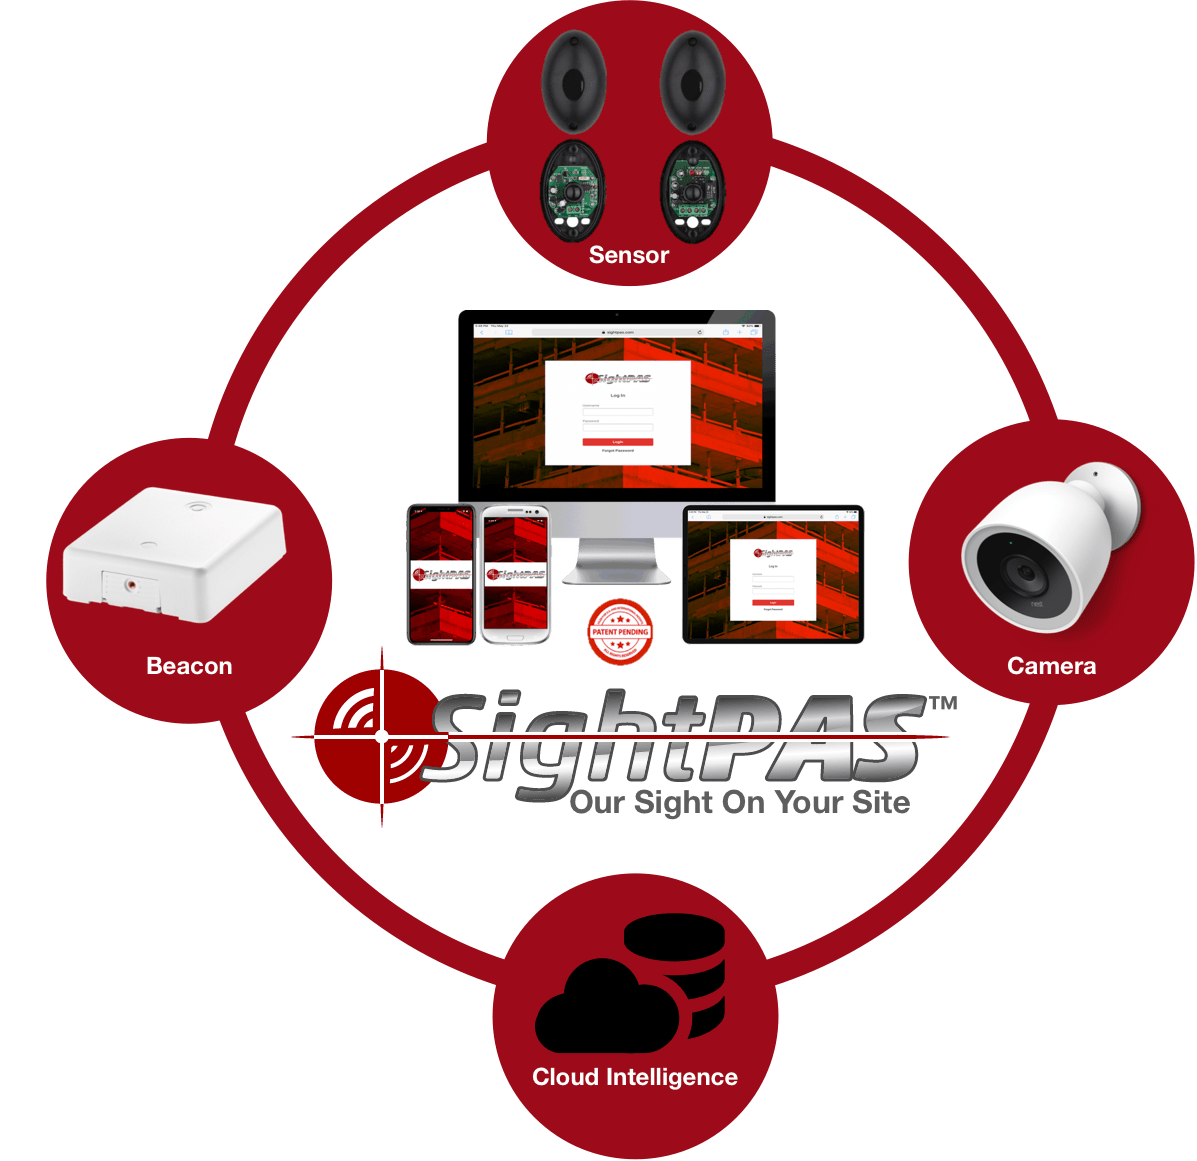 The Future of Safe and Seamless Site Management is Here – Introducing SightPAS